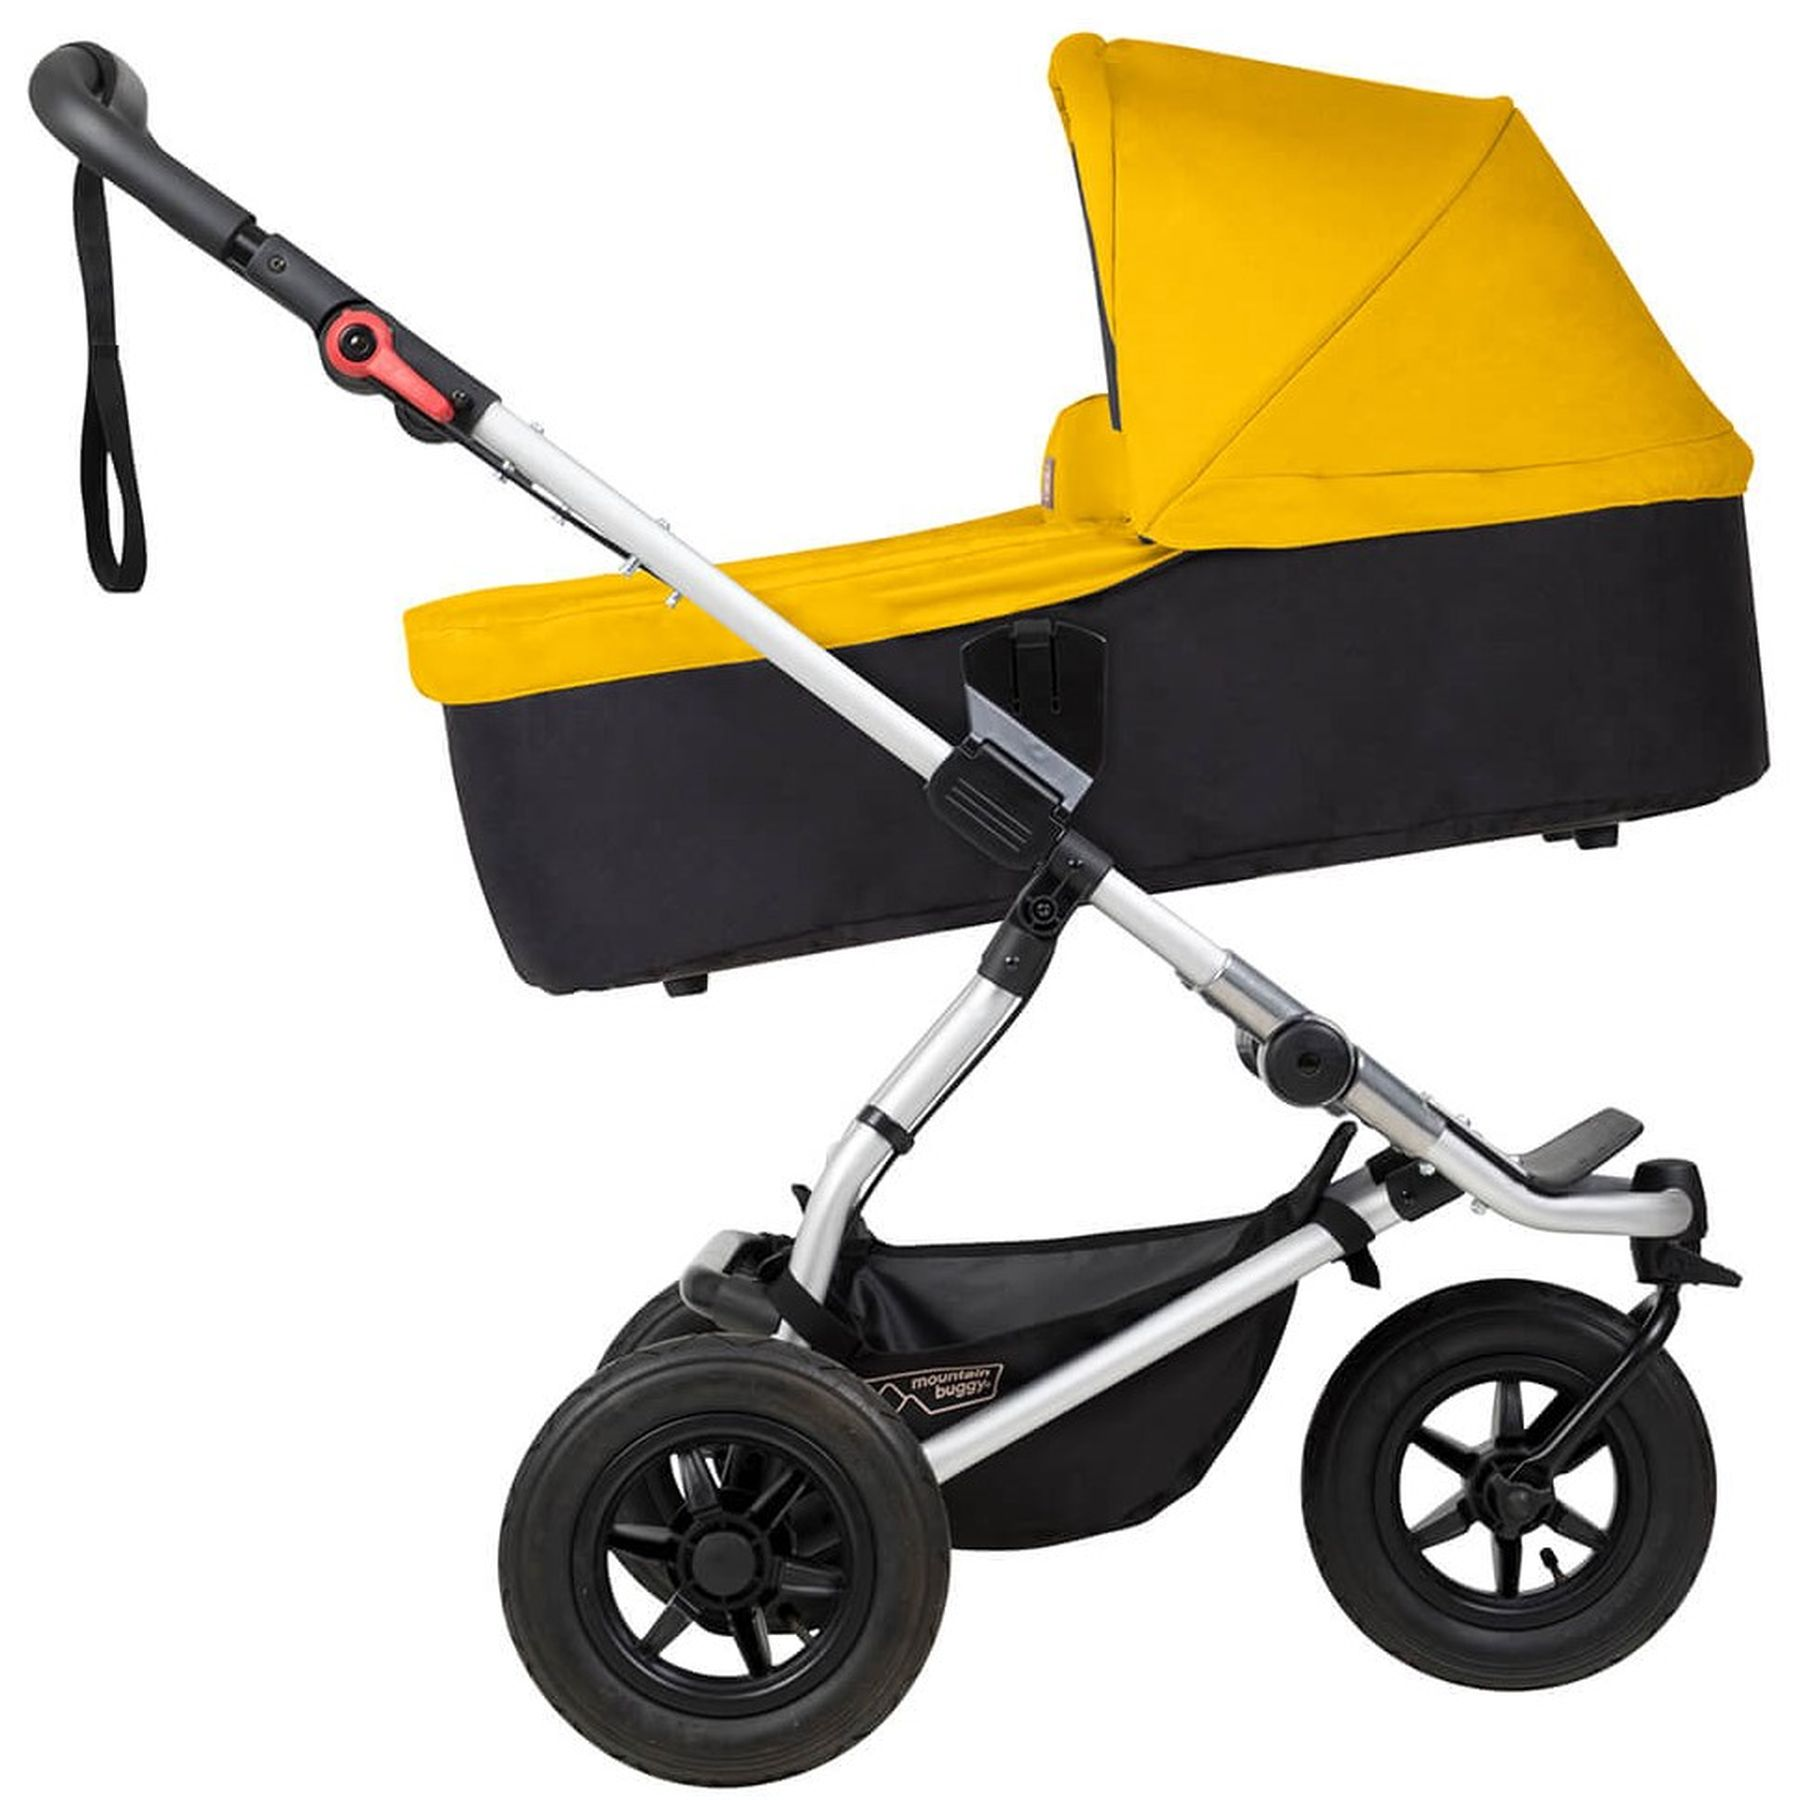 Newborn Stroller Nz Mountain Buggy Carrycot Plus Swift Out About Stroller